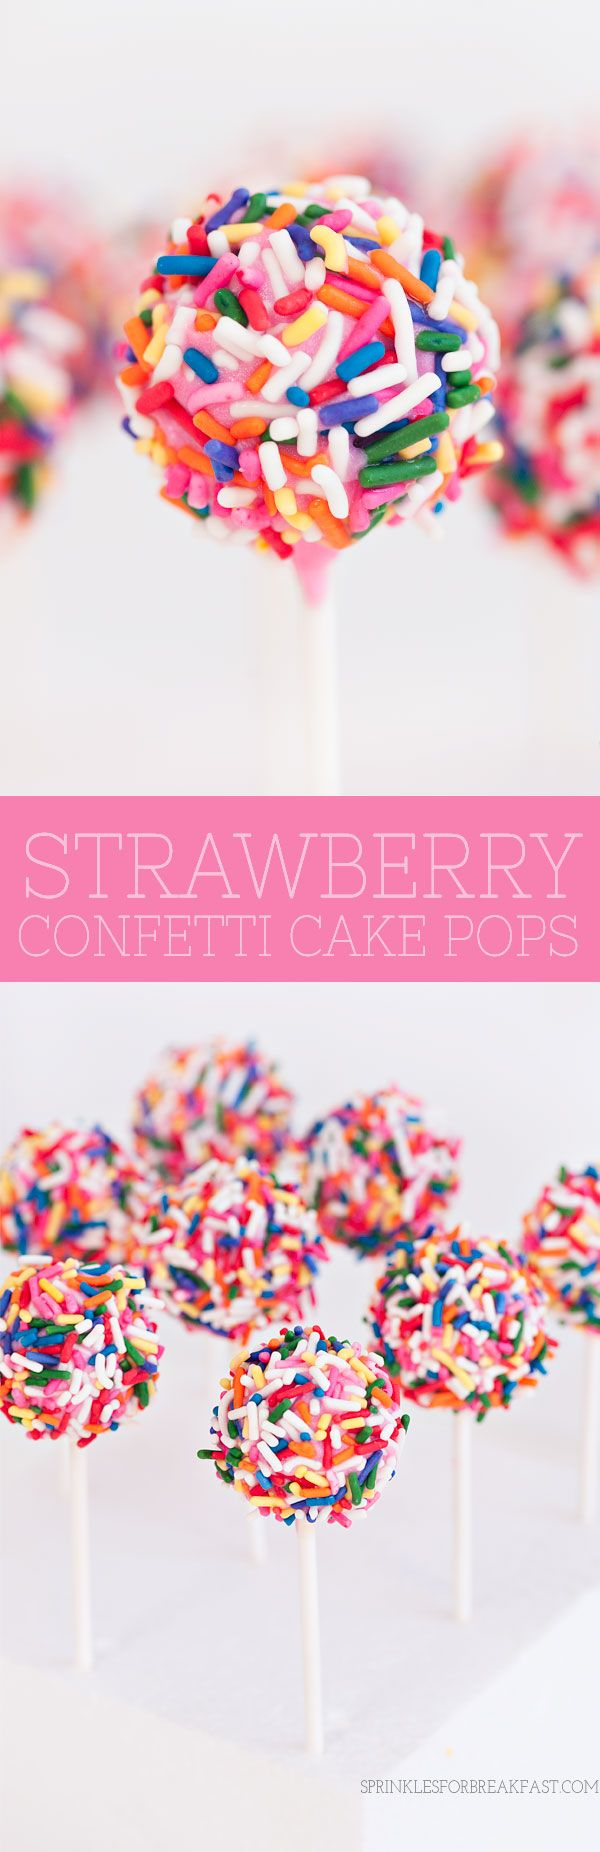 Strawberry Confetti Cake Pops | Sprinkles for Breakfast